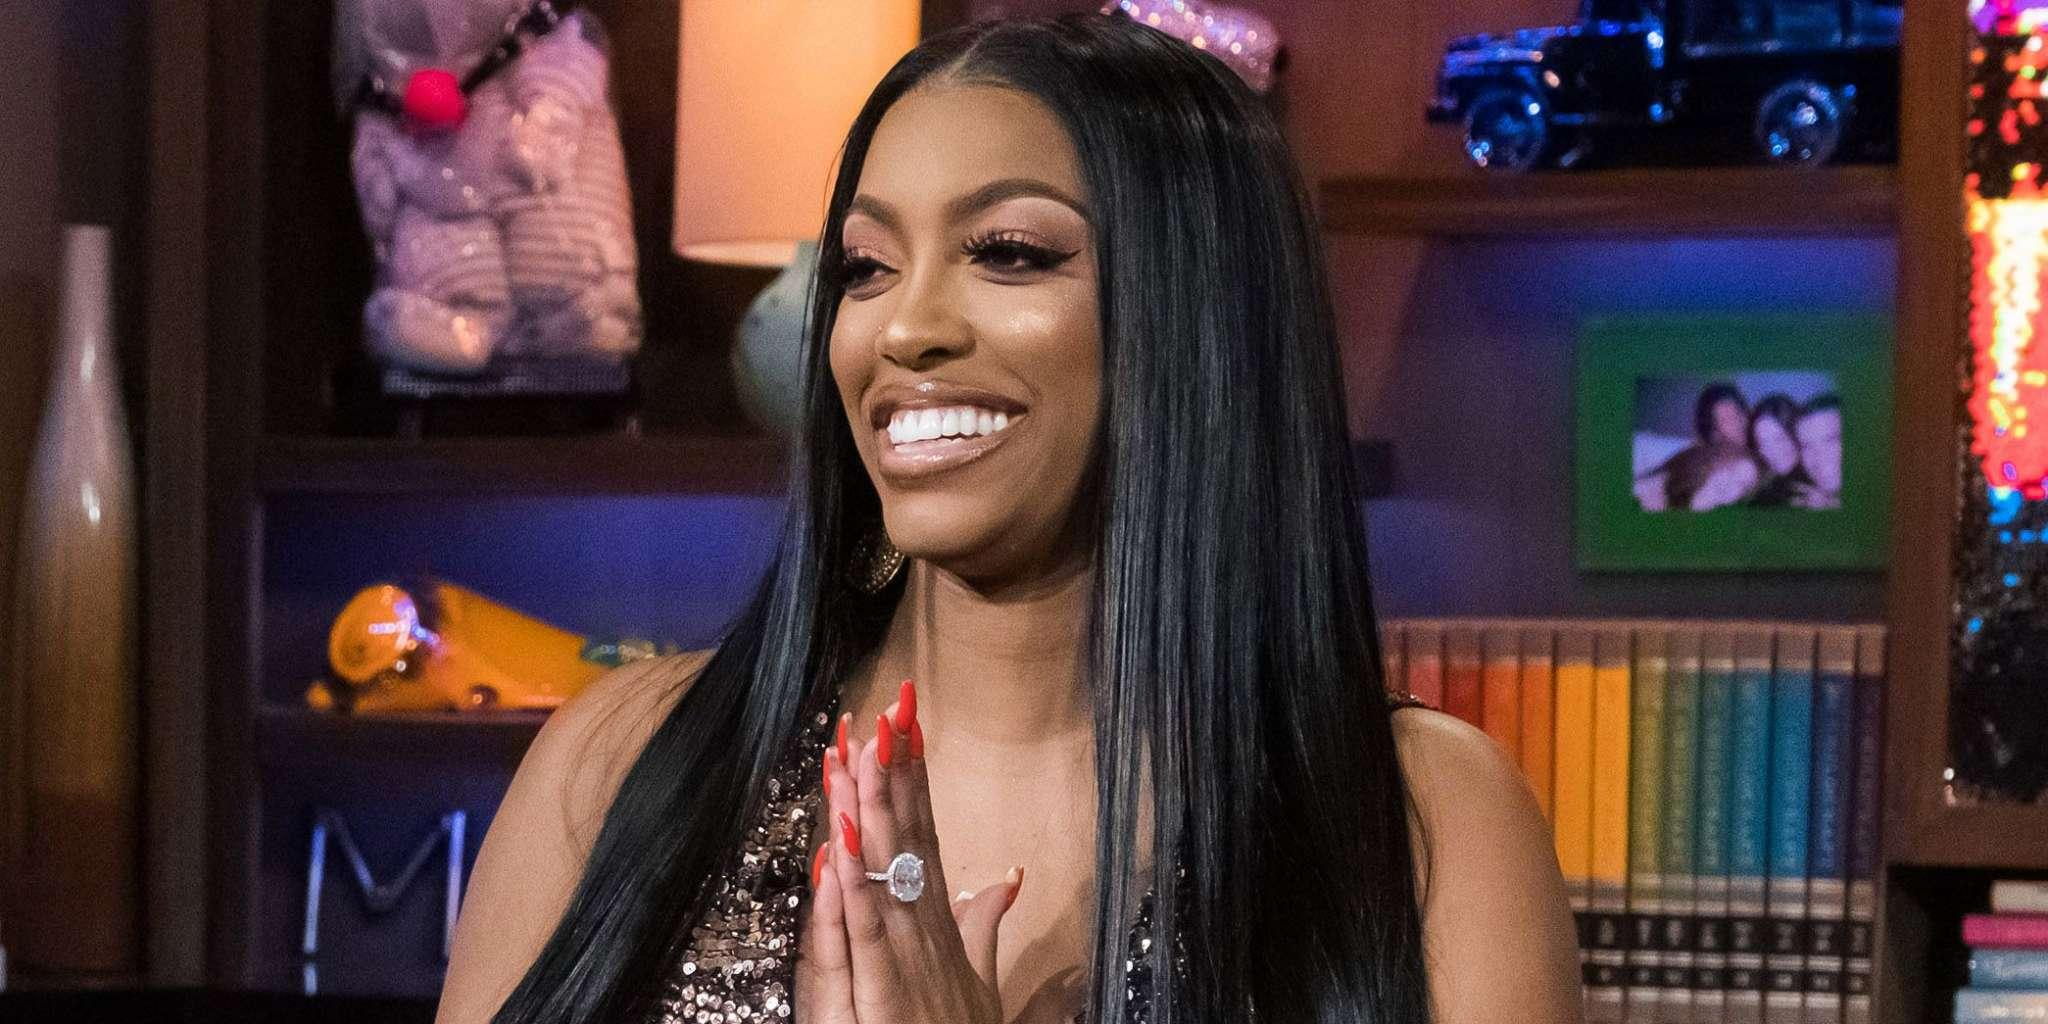 Porsha Williams Shares An Important Recommendation Amidst The Global Crisis